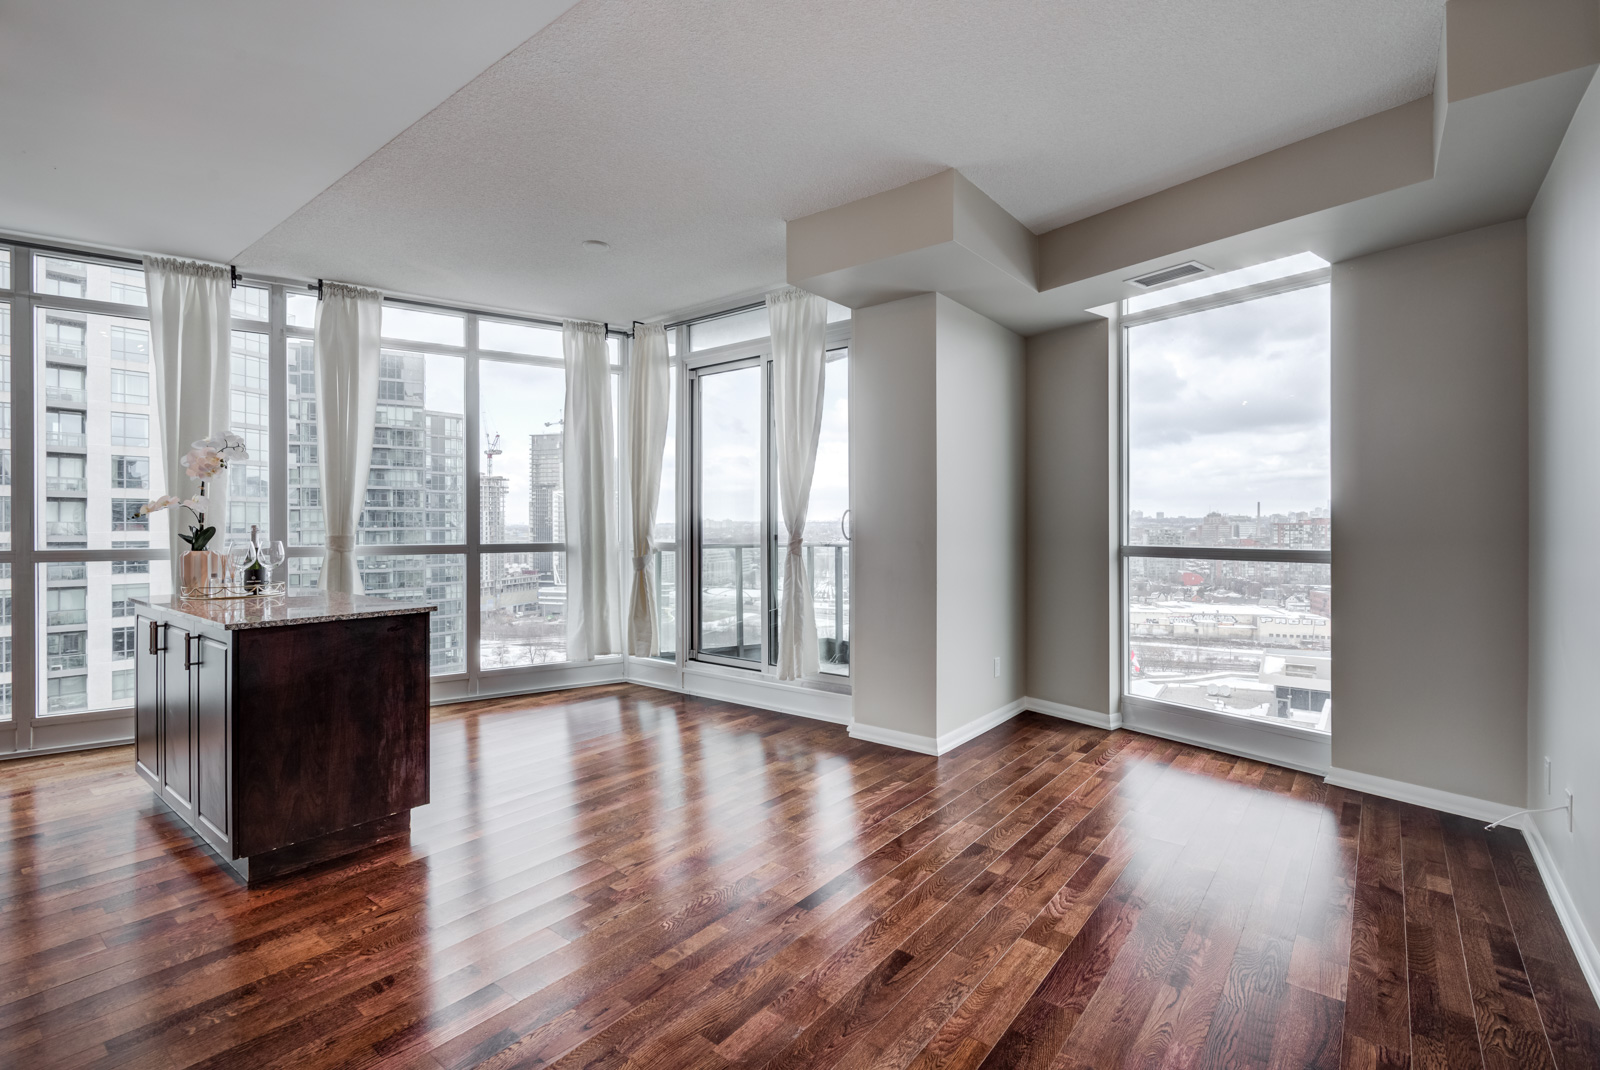 Empty condo unit of 215 Fort York Blvd with kitchen island, dark hardwood floors and several large windows.